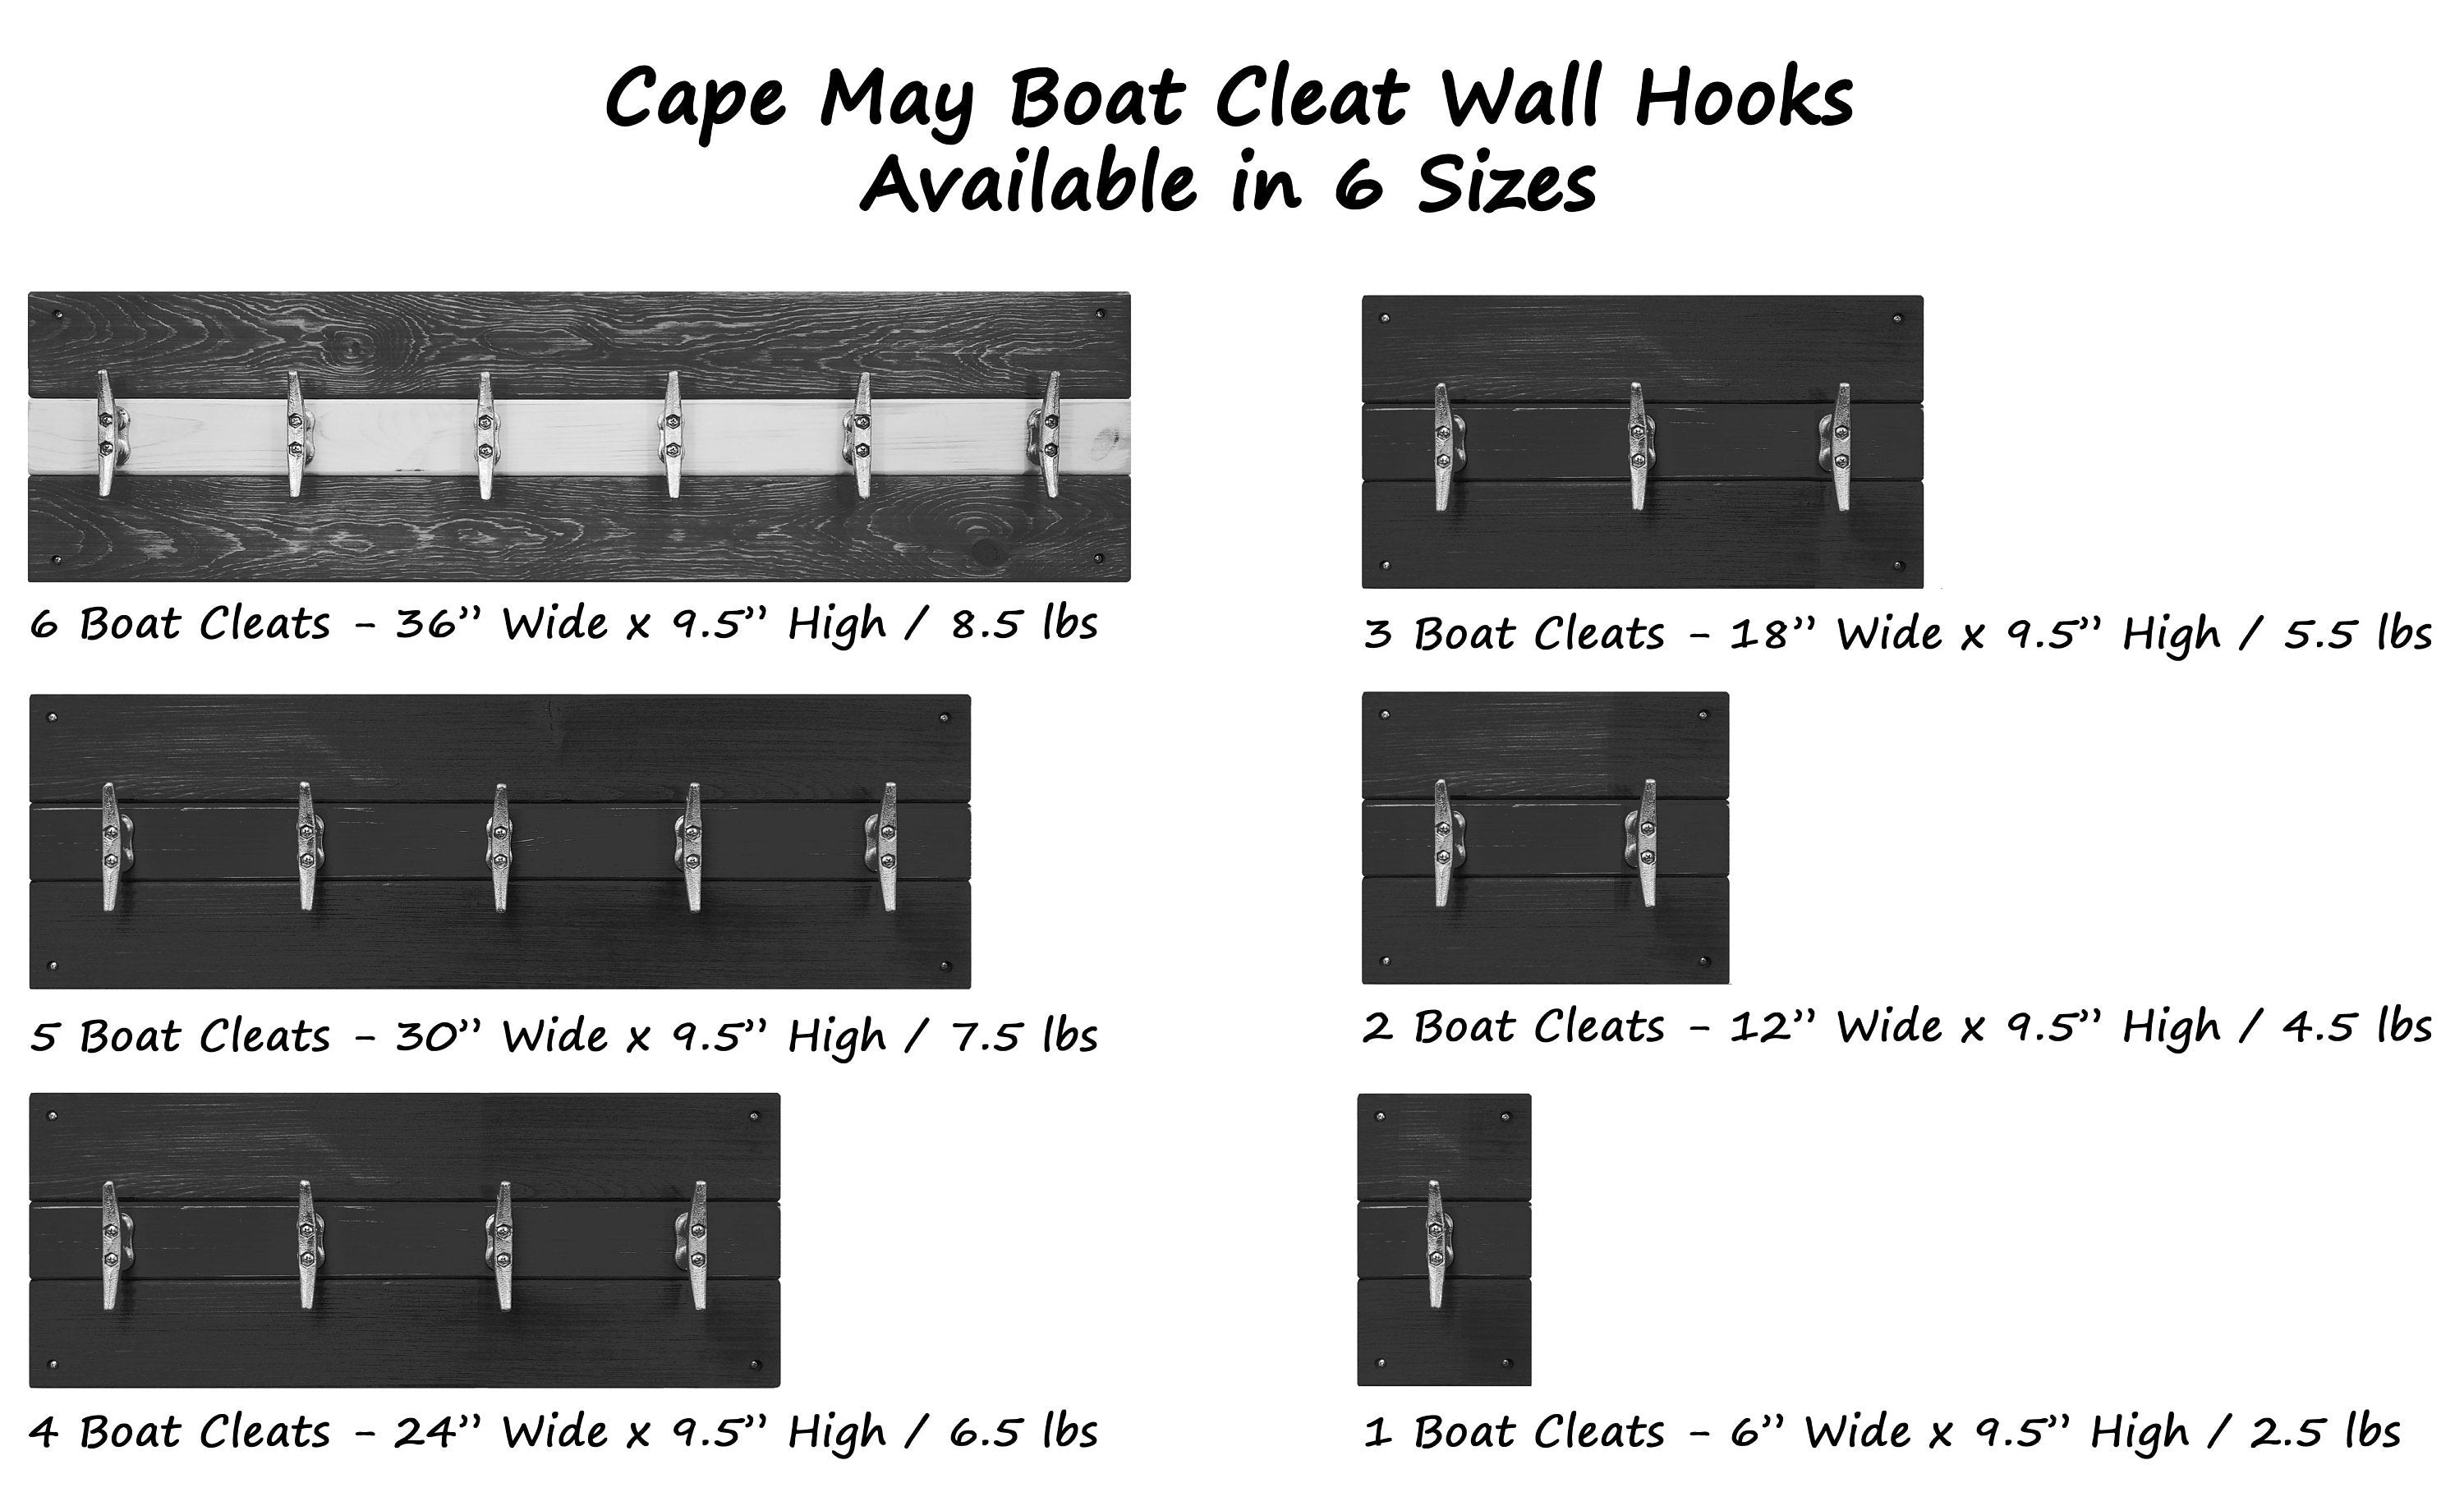 Cape May Boat Cleat Wall Hooks - 20 Paint Colors & 20 Accent Paint Colors - Renewed Decor & Storage